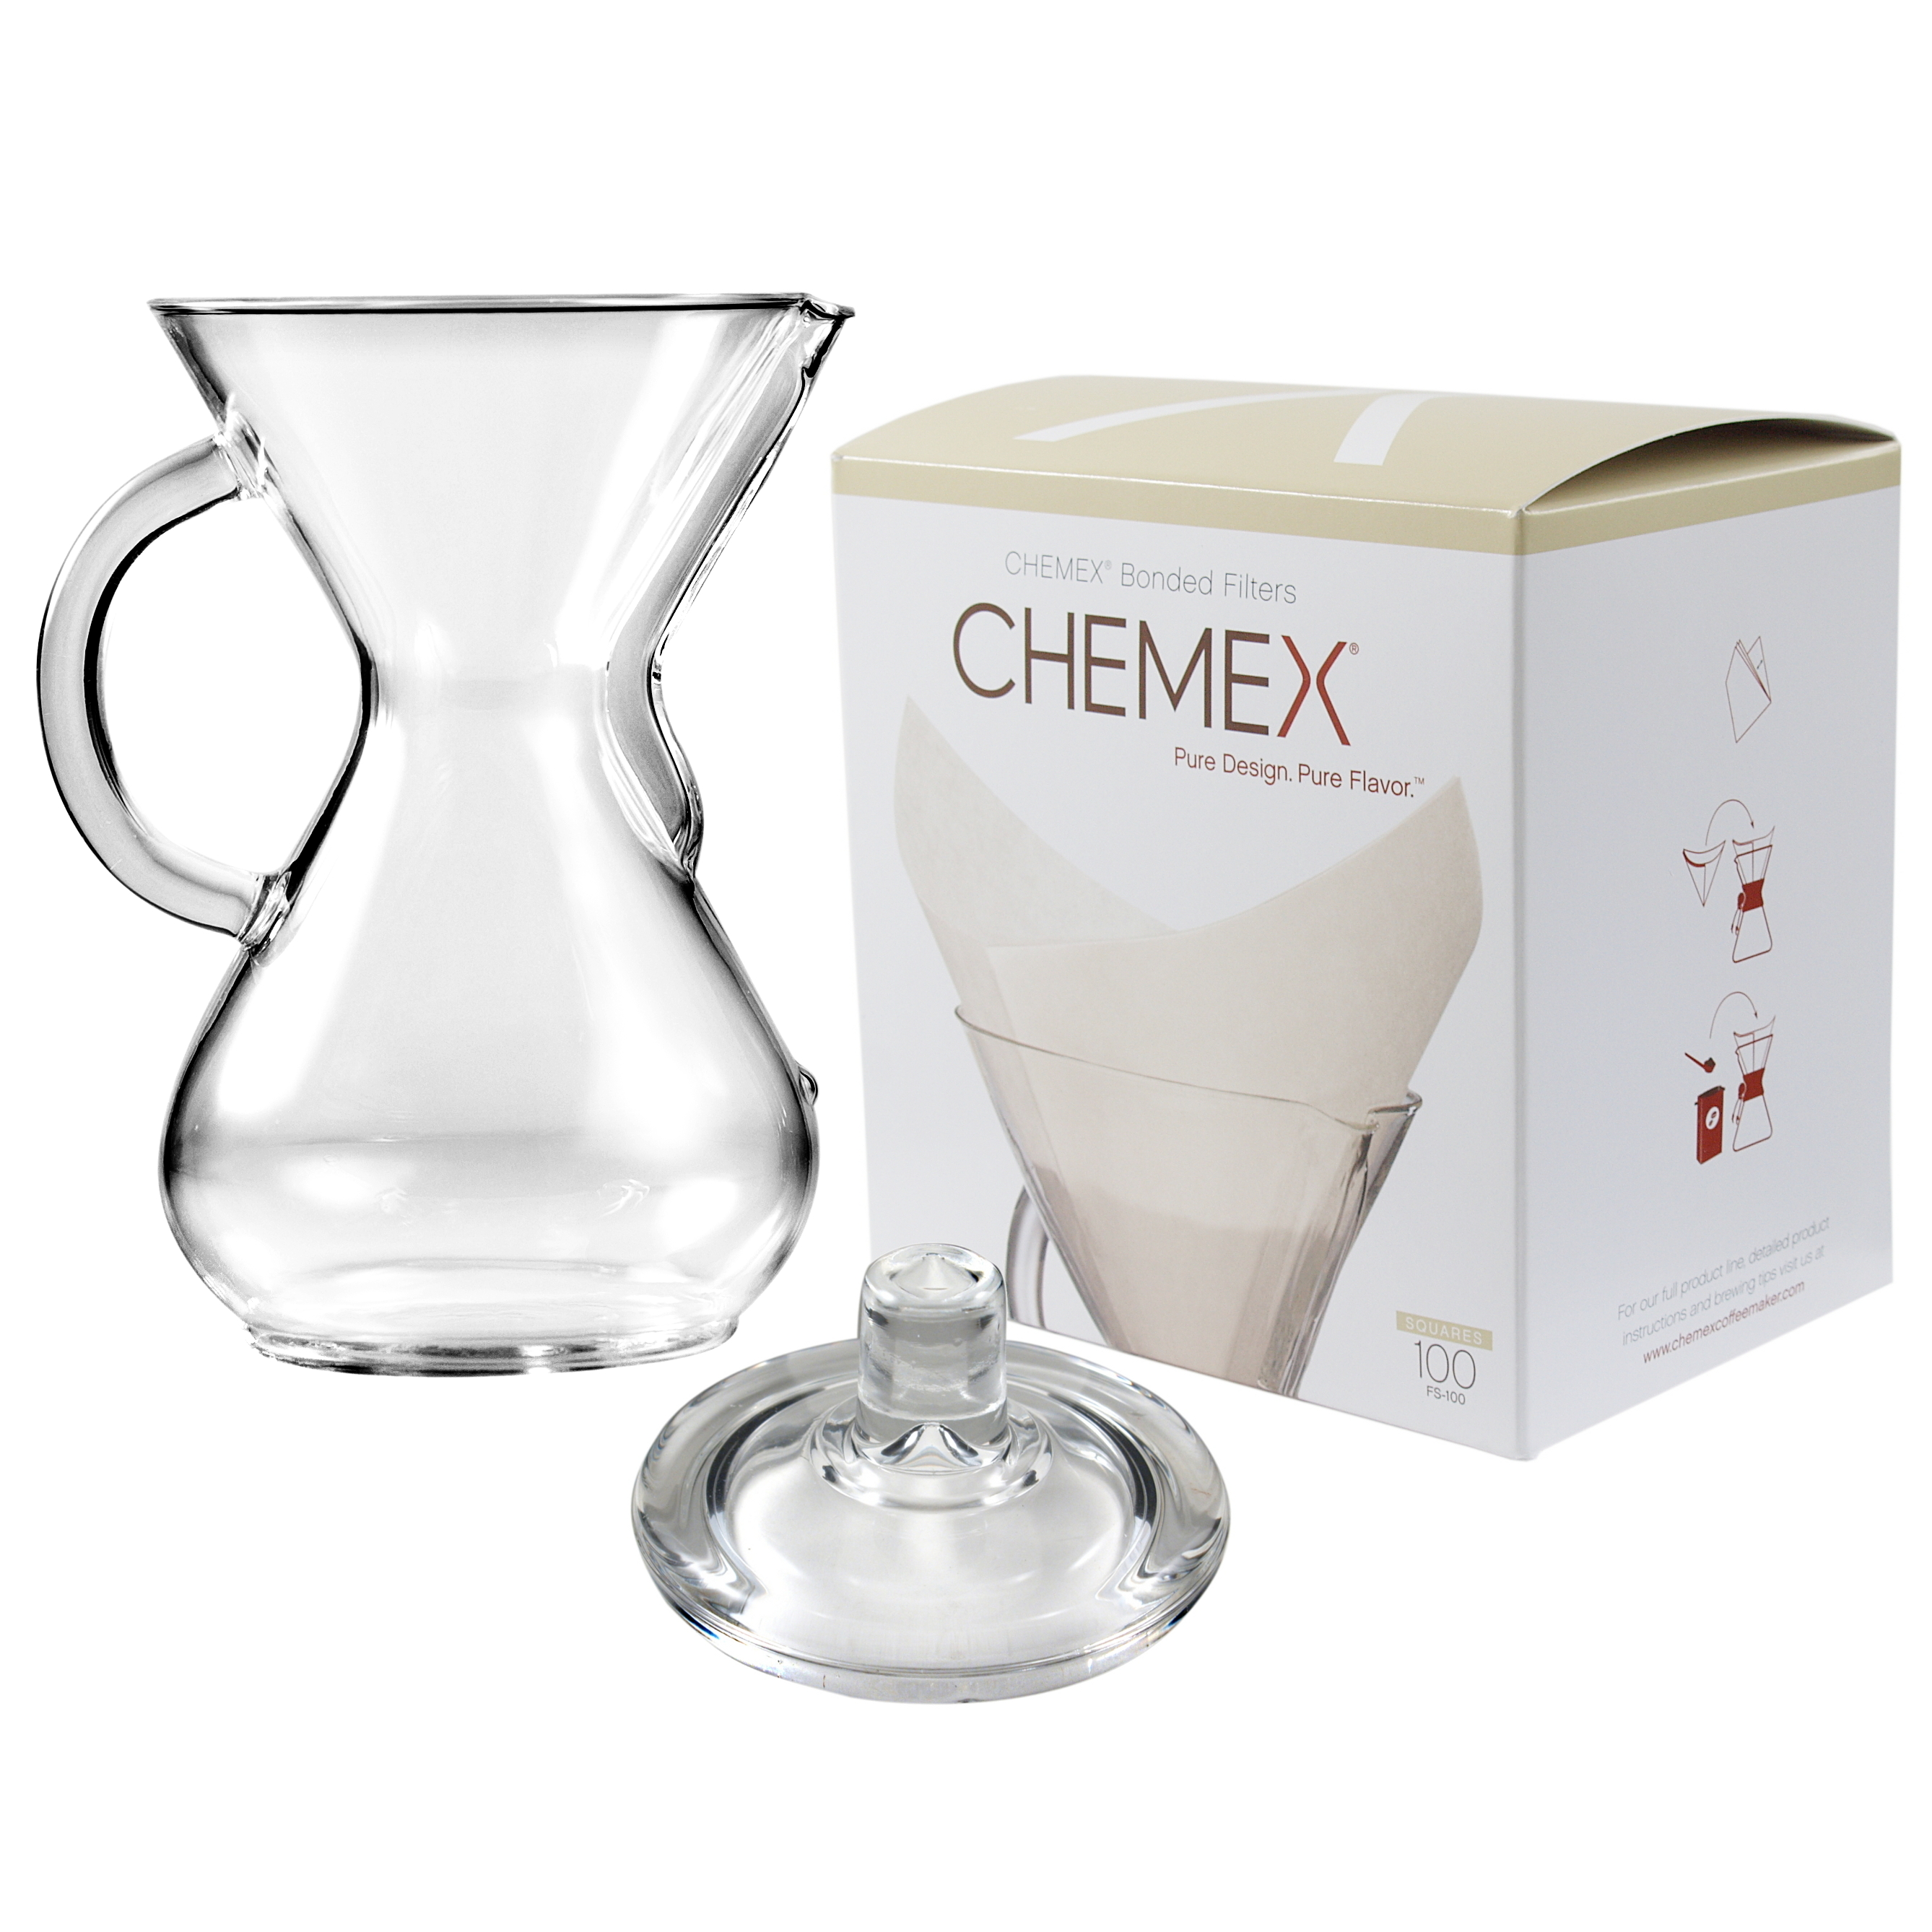 Chemex Glass 30 Ounce Coffee Maker with Cover and 100 Count Oxygen Cleansed Bonded Square Coffee Filters